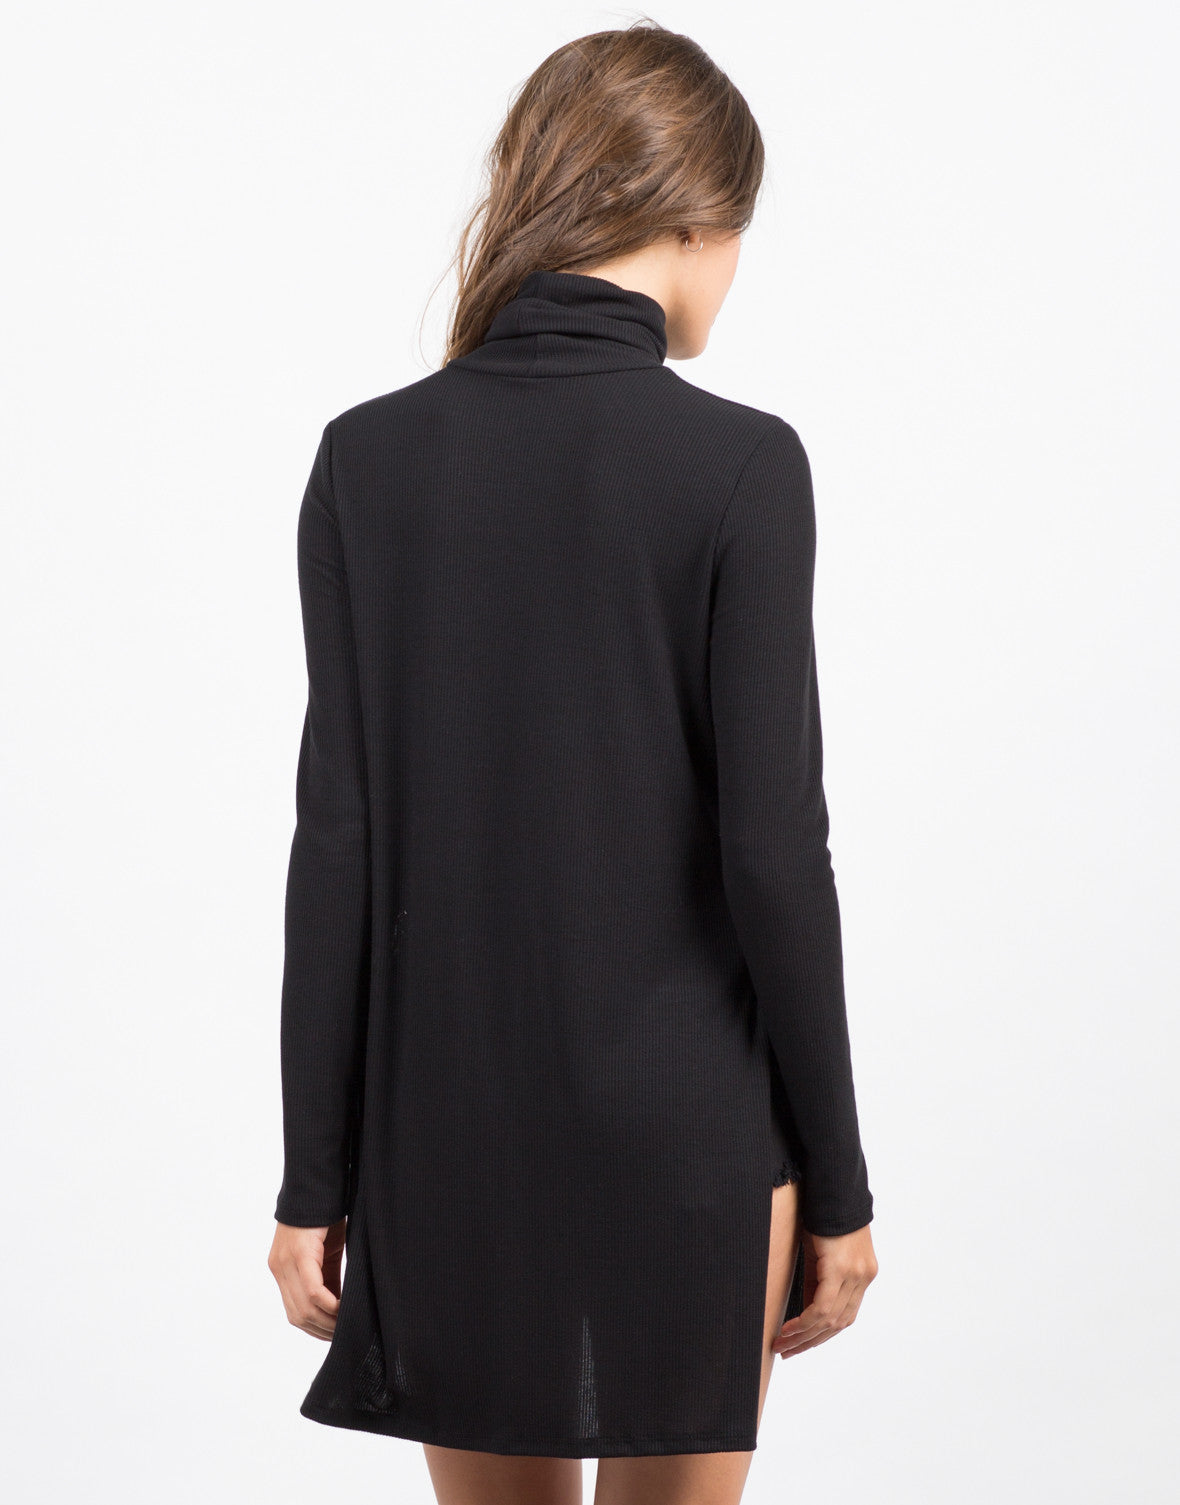 Back View of Turtleneck Side Slits Top